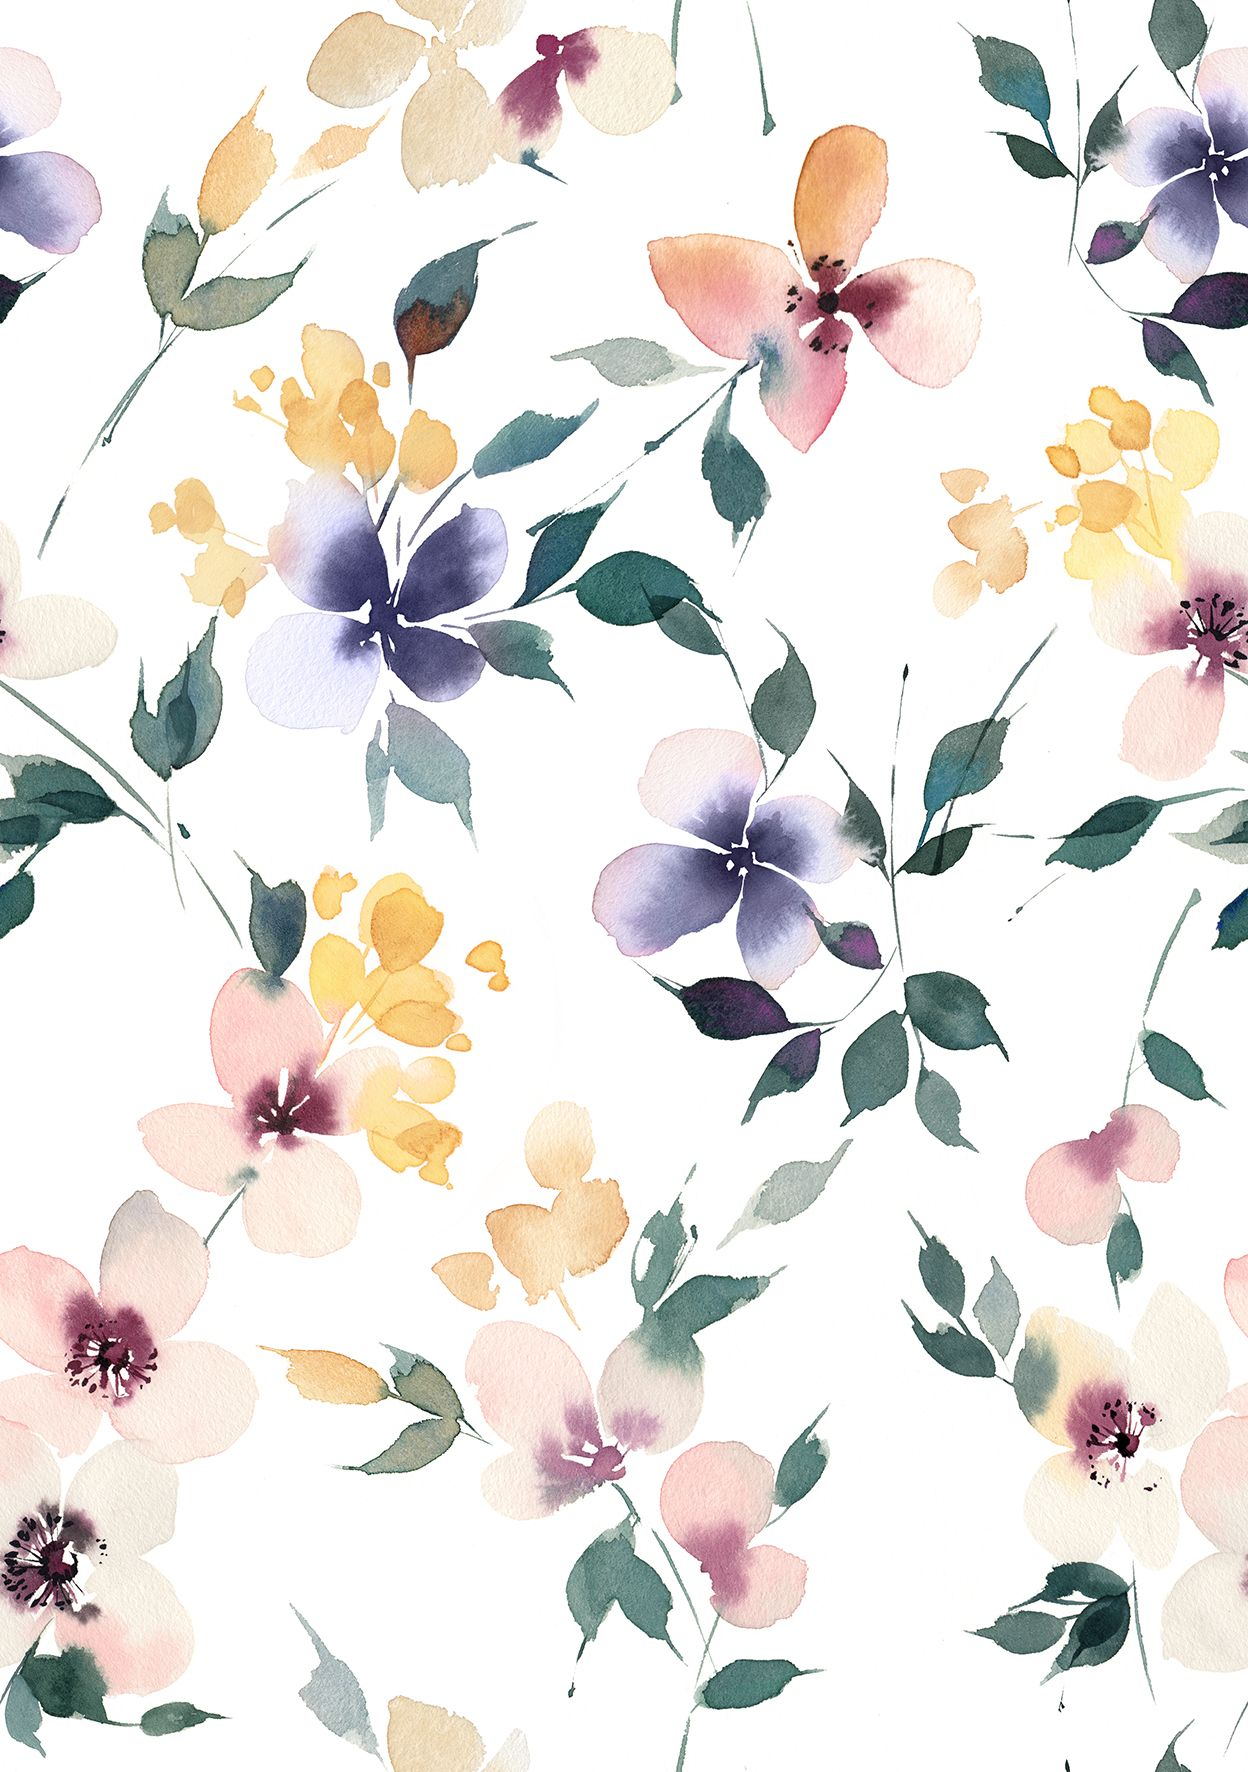 Chic Romantic Floral Background Scarf By Lunaisdrawing In 2020 Watercolor Floral Pattern Watercolor Flowers Pattern Flower Background Wallpaper